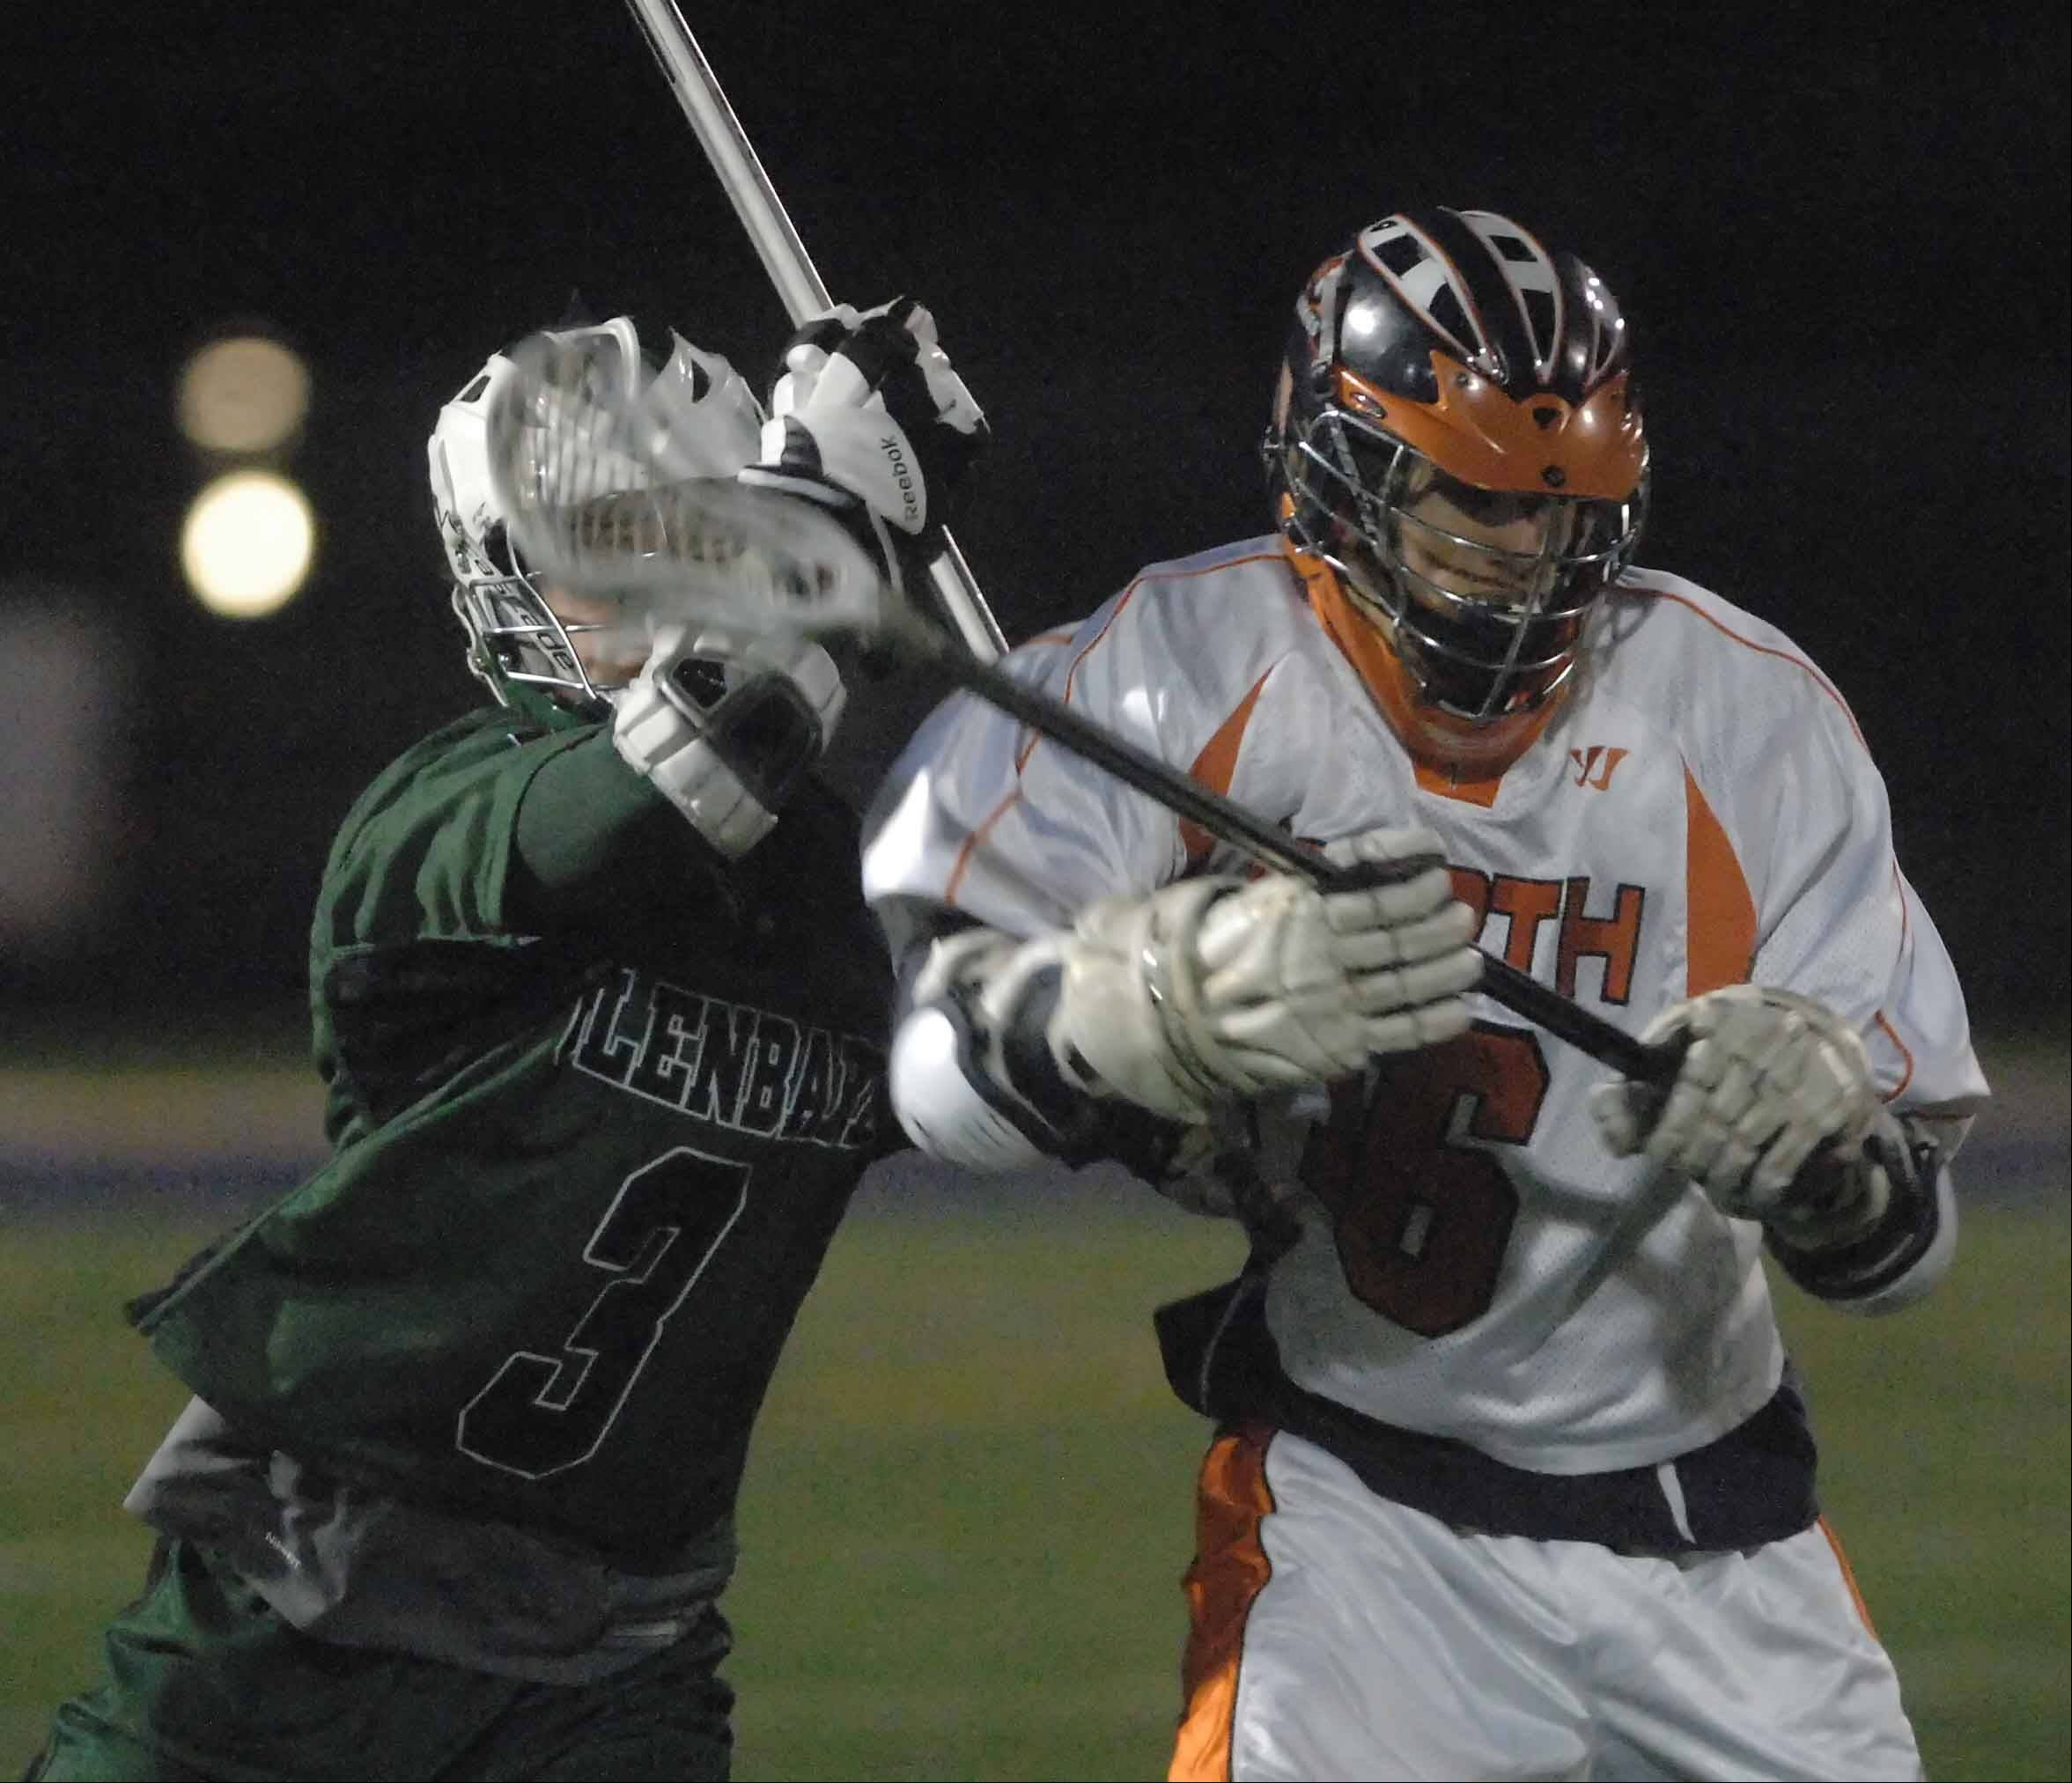 Boys and girls lacrosse clubs at Naperville North and Naperville Central high schools will remain clubs for the spring season, but the school board could consider deeming them official sports by spring 2015.